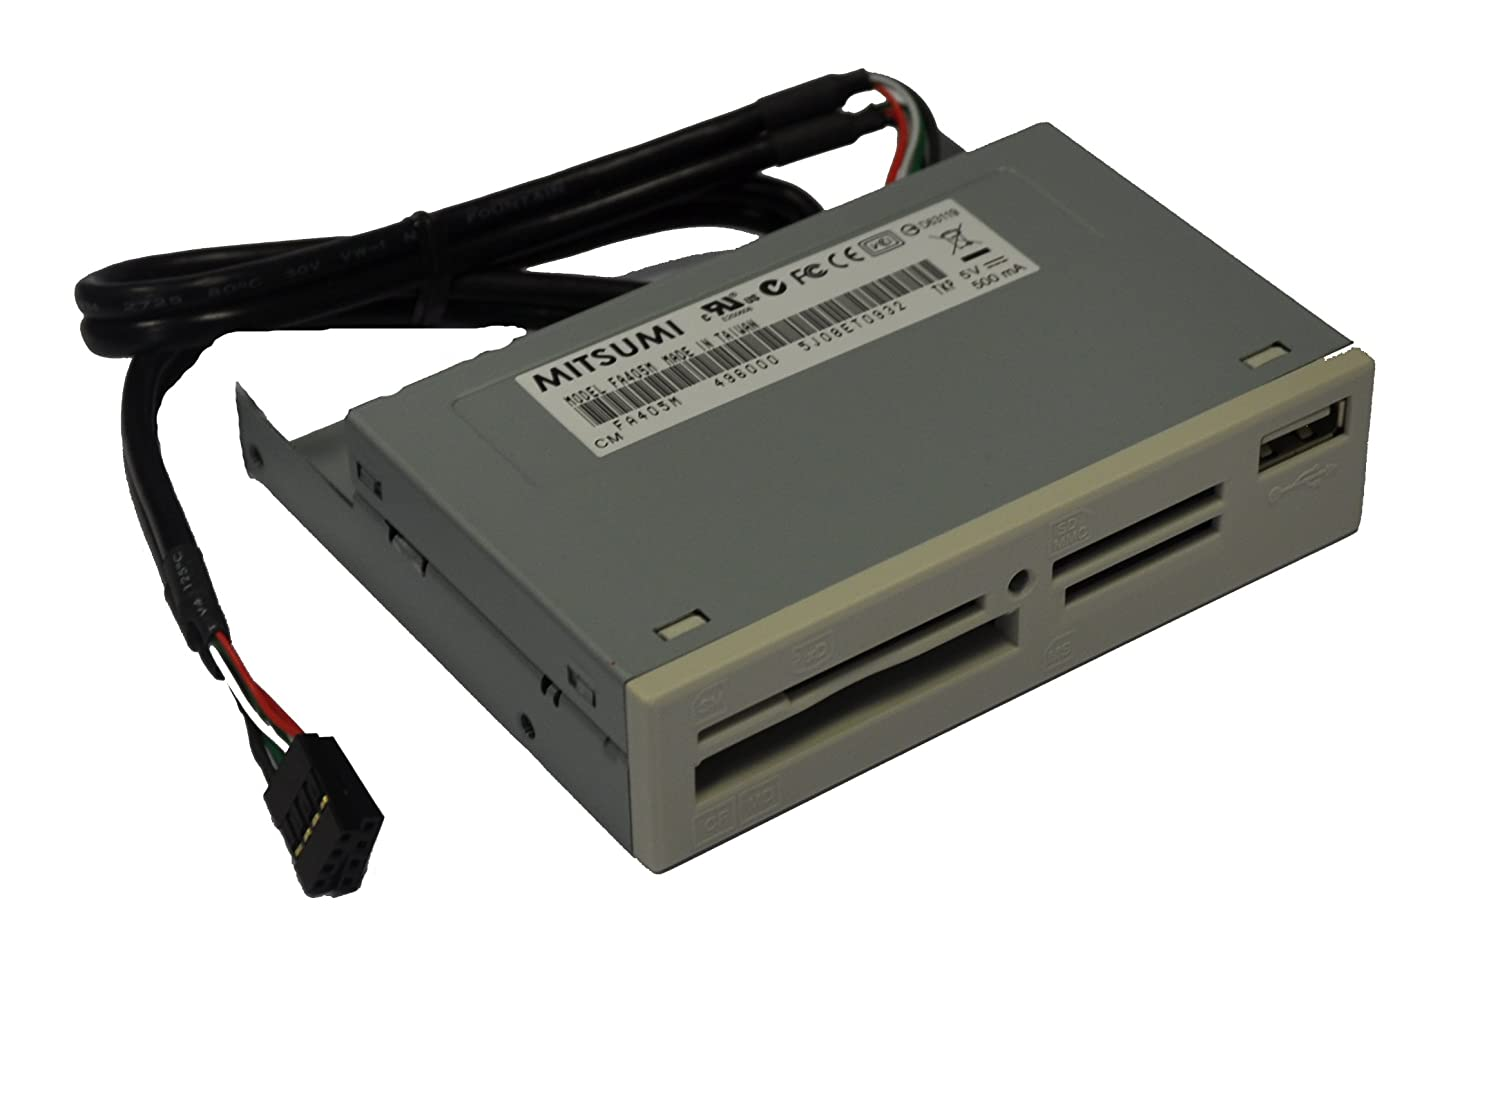 FA405M SDHC DRIVERS FOR WINDOWS 7